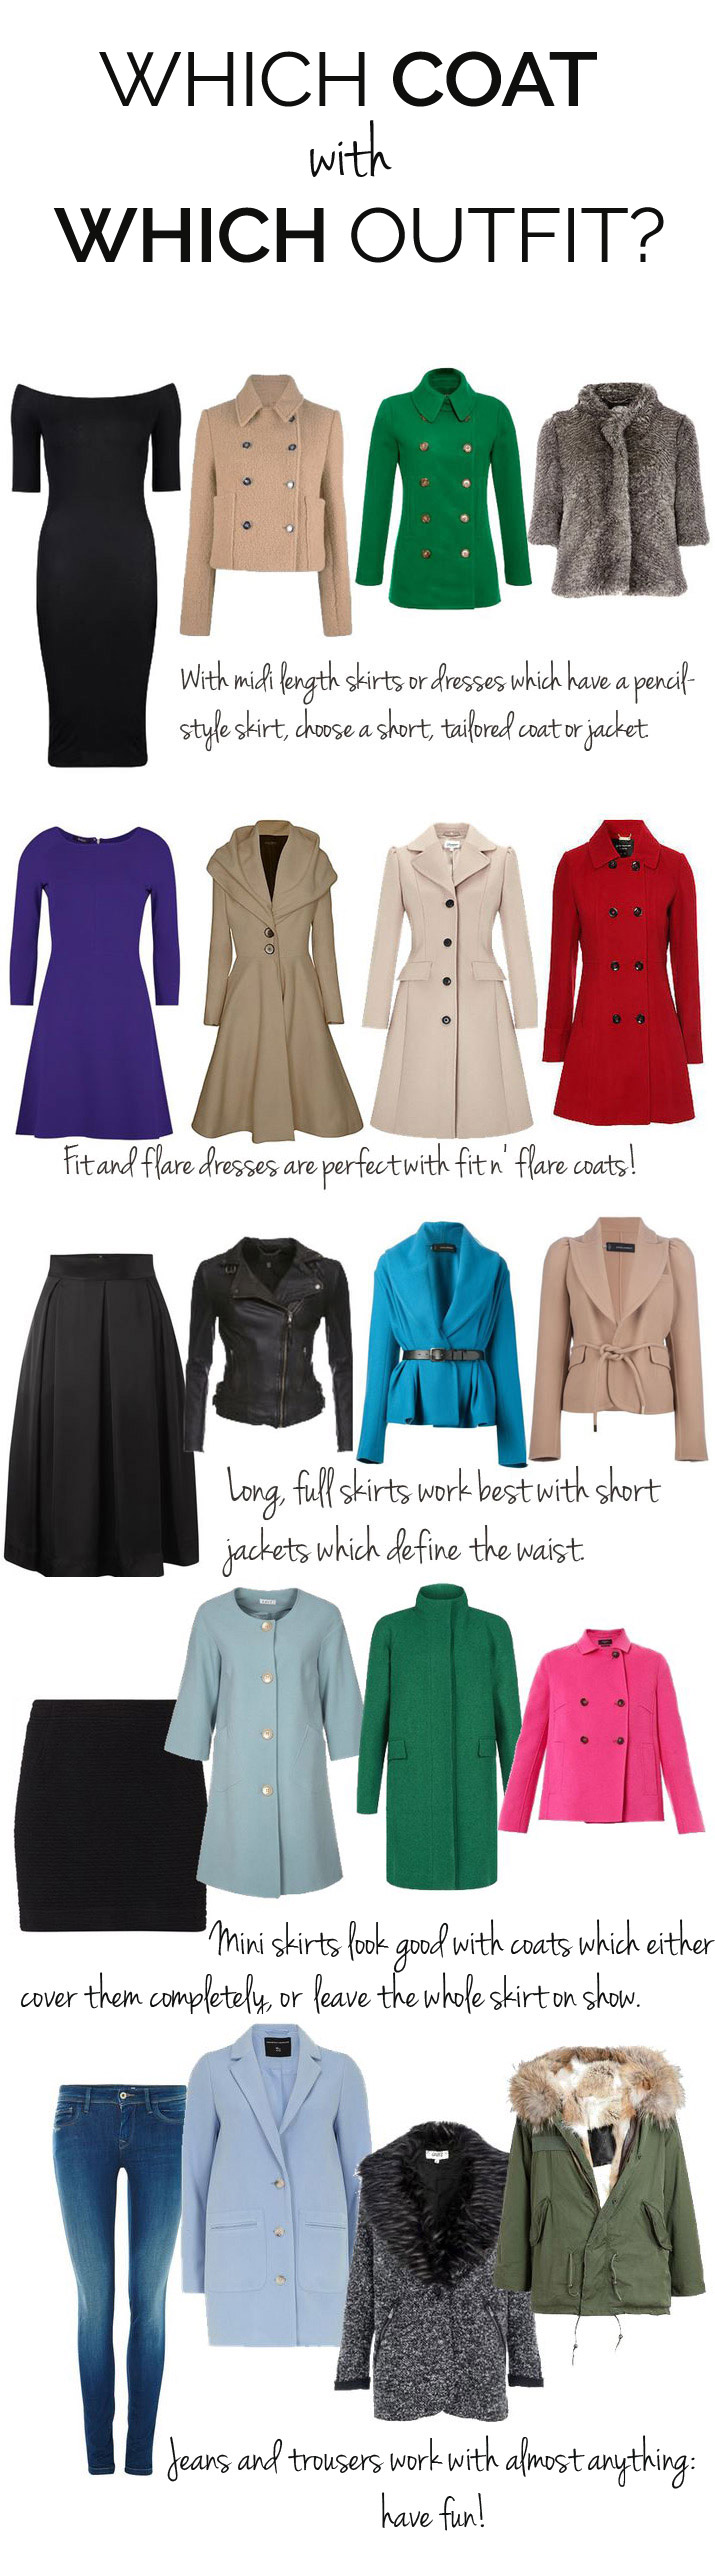 Which coat should you wear with each outfit